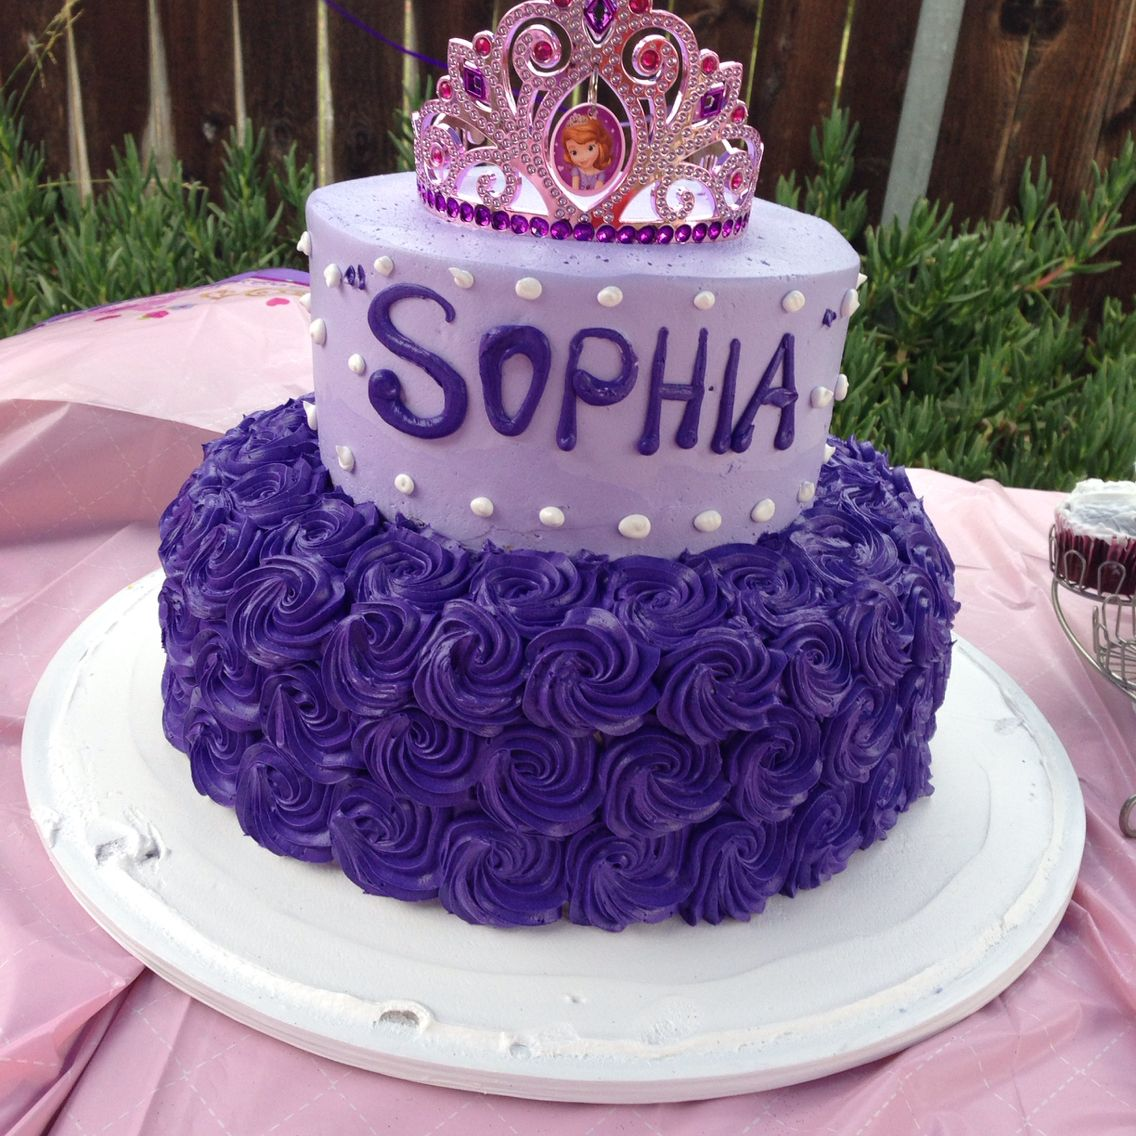 Sophia the First cake First birthday cakes, Sophia the